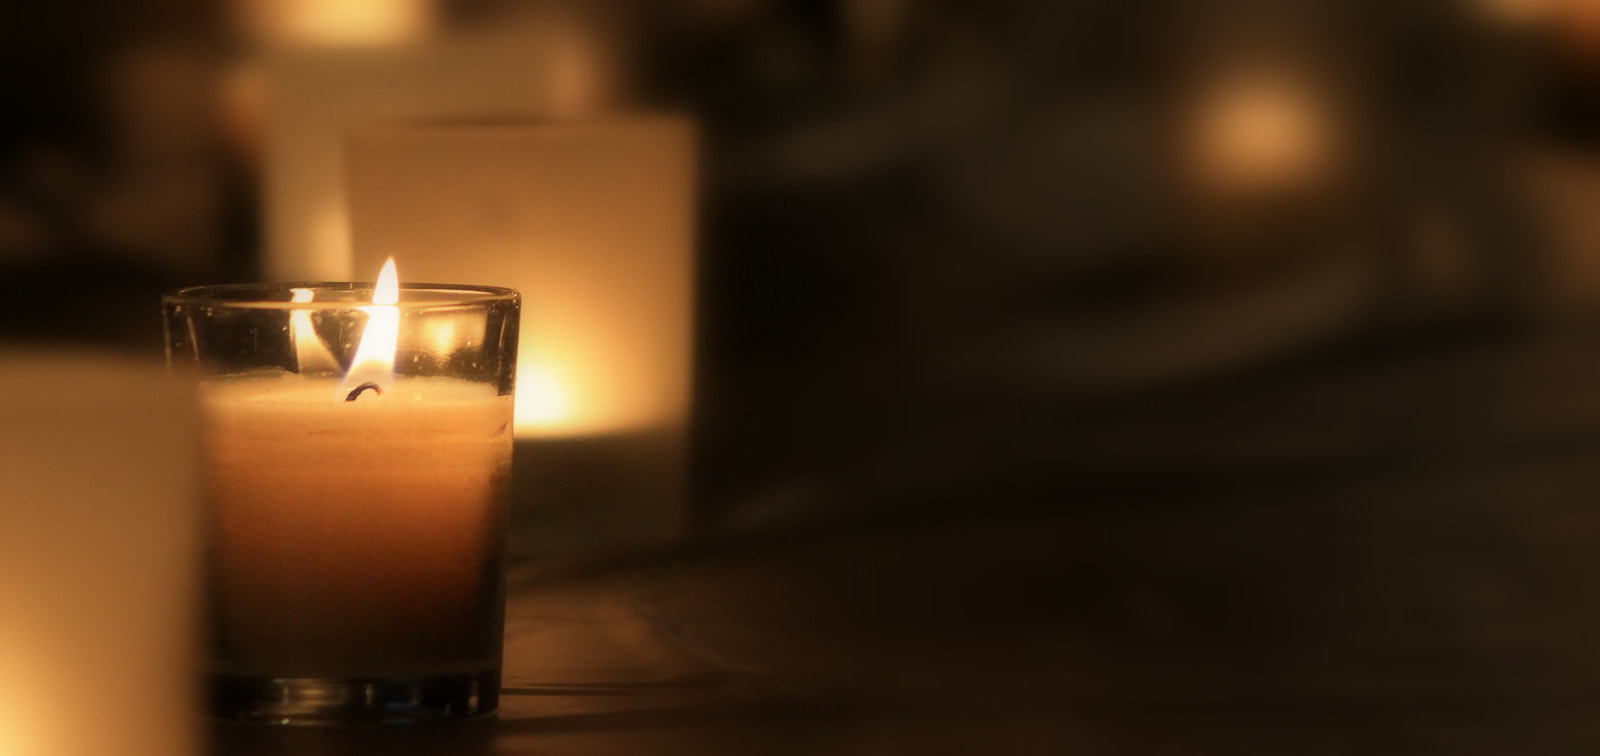 Photograph This candle is on fire! by Andrew Stein on 500px